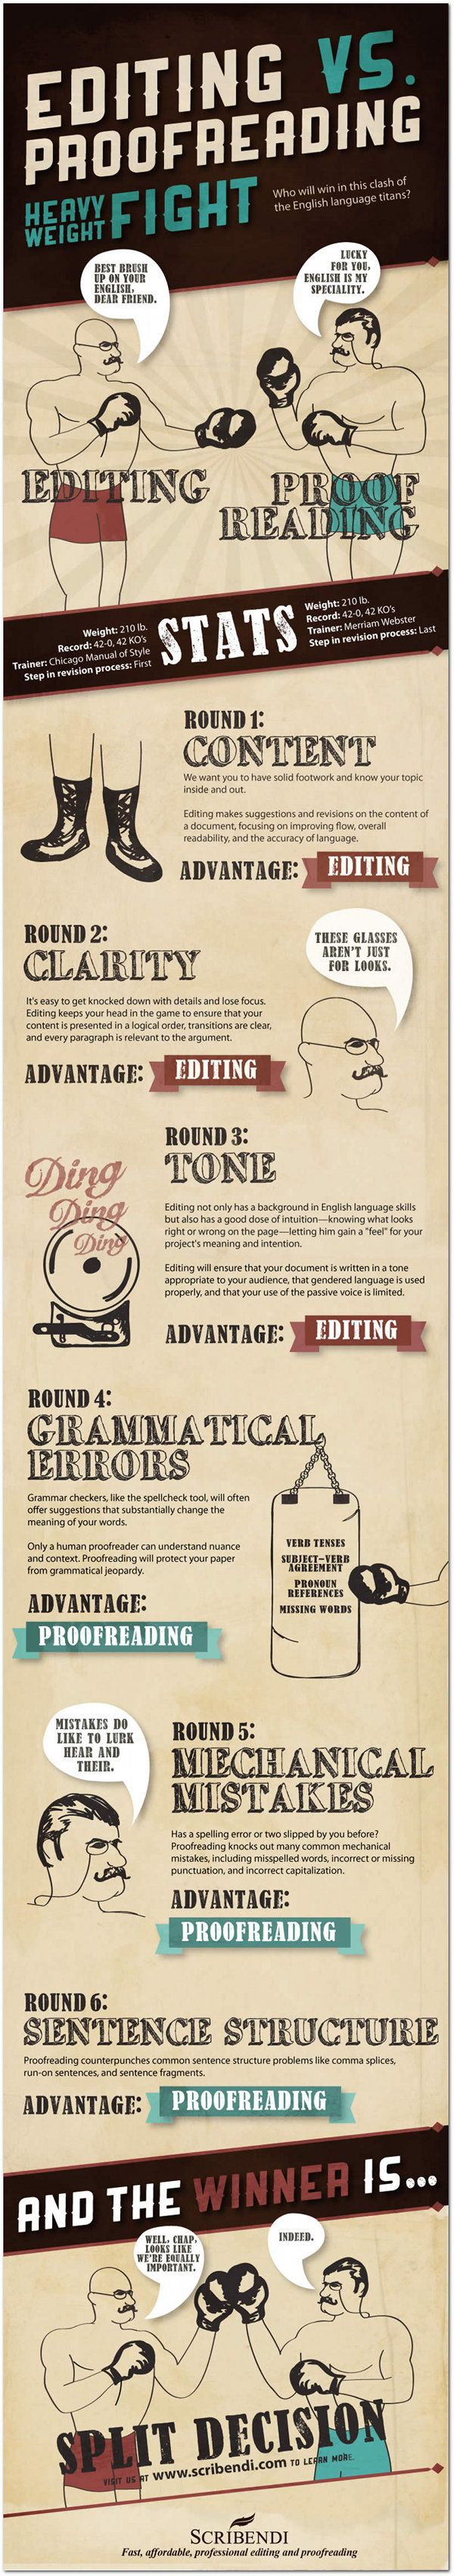 1000+ images about Editing & Proofreading Academic papers on ...